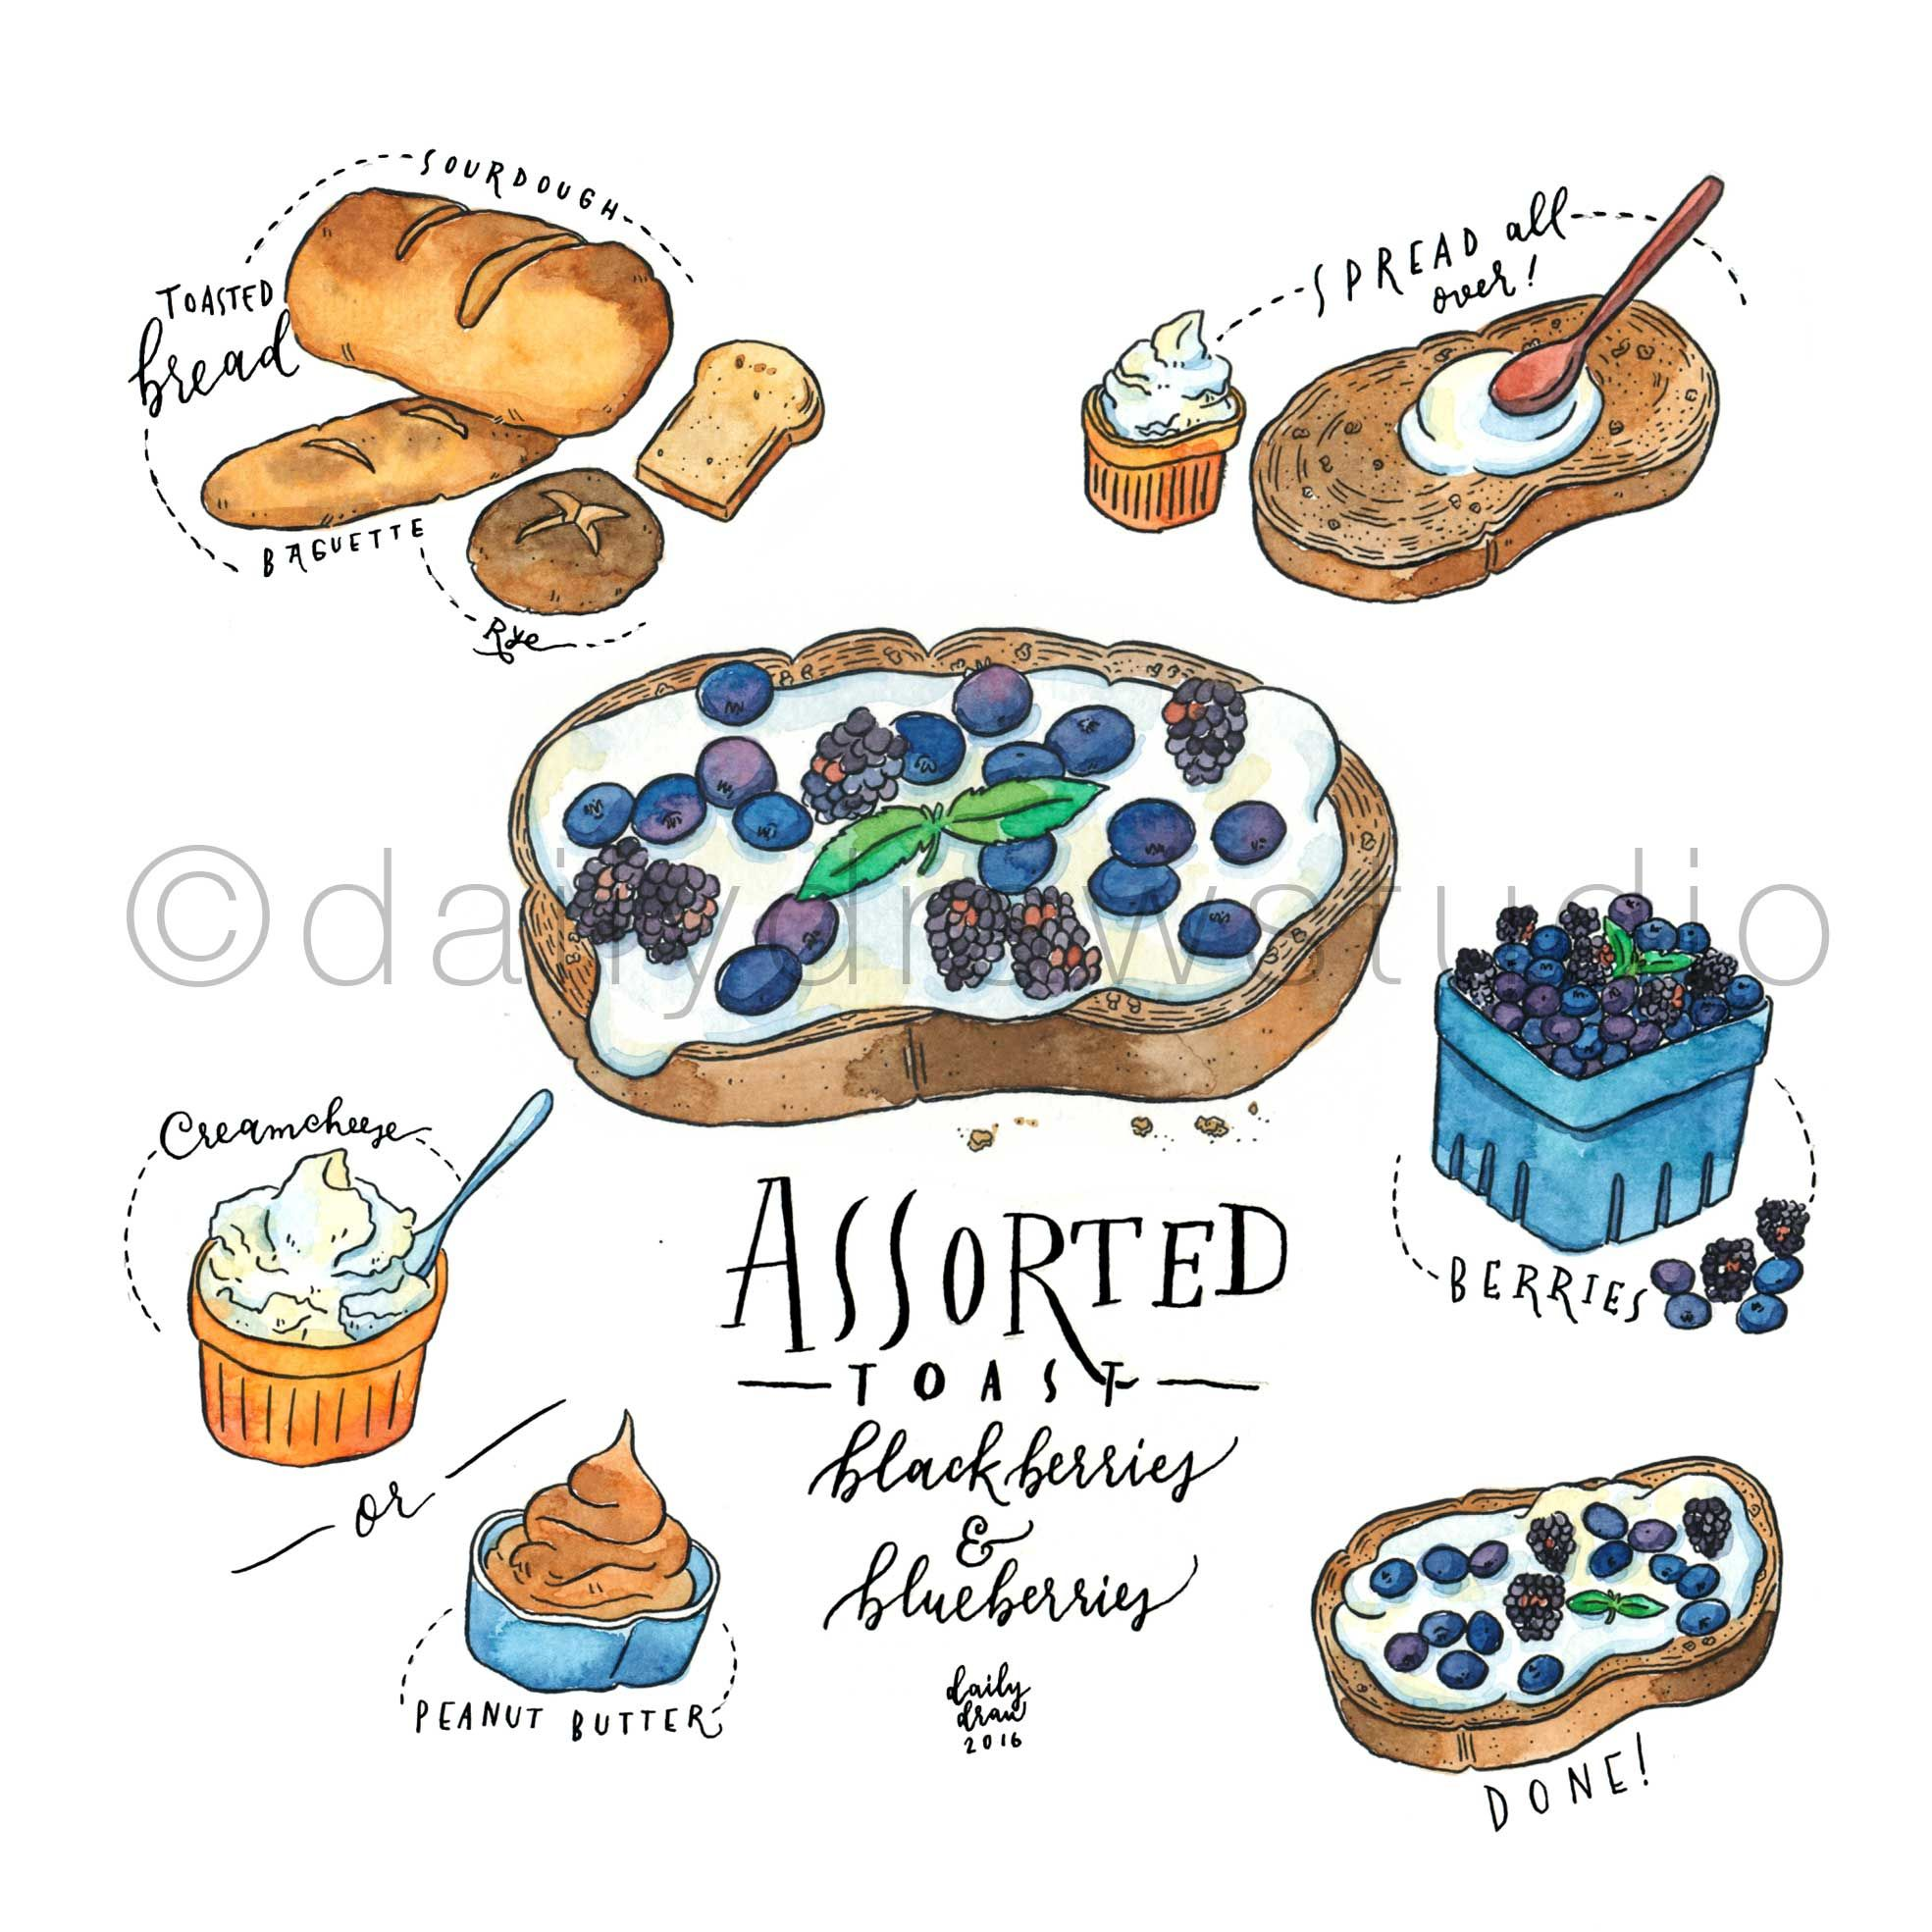 Pin By 𝘍𝘭𝘰𝘳𝘤𝘪𝘵𝘢 𝘋𝘦 𝘈𝘮𝘢𝘱𝘰𝘭𝘢 On My Watercolour Works Food Drawing Watercolor Food Recipe Drawing